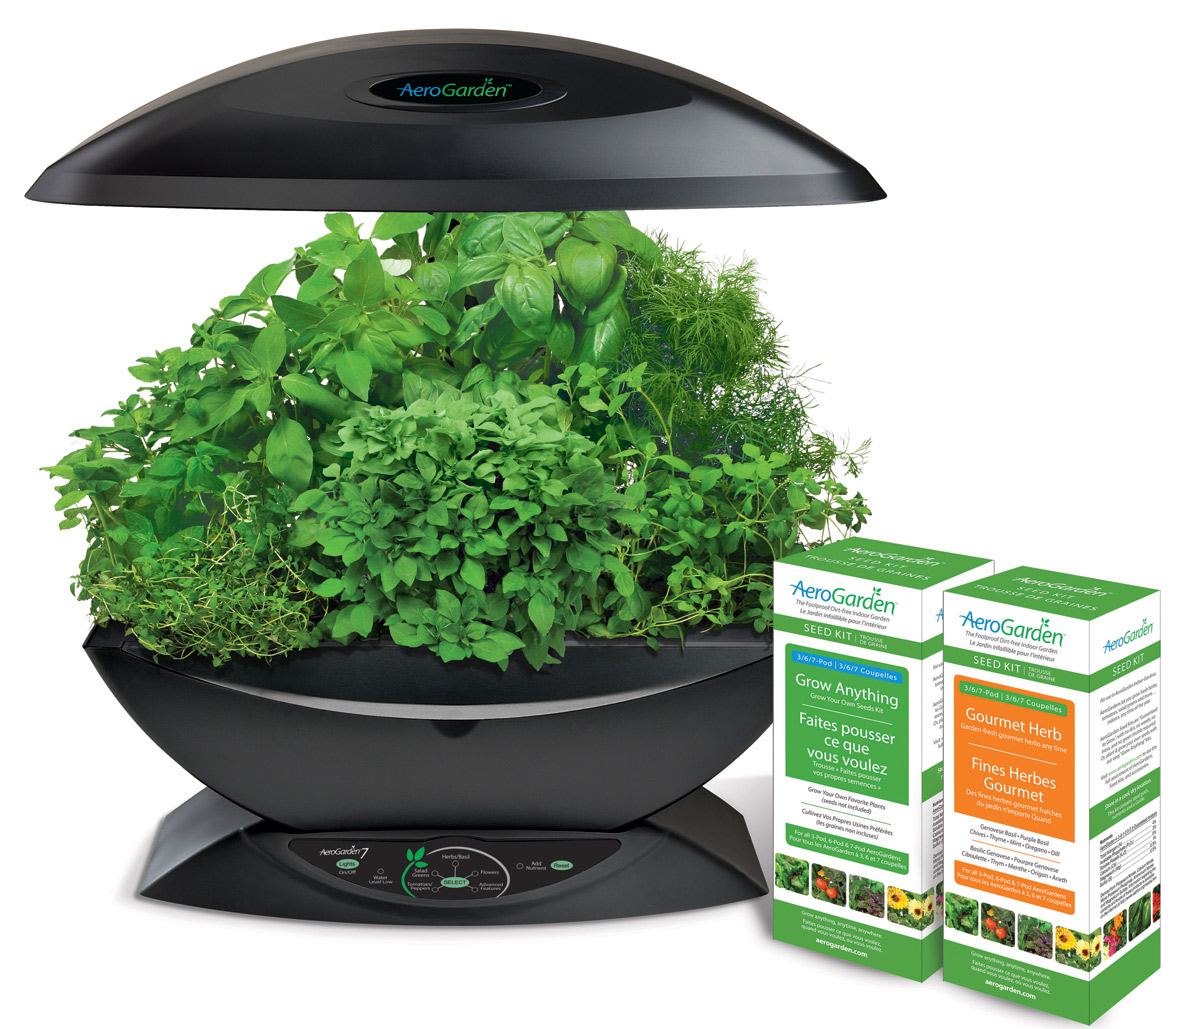 Aerogarden 7 Gourmet Herb Grow Anything Kit Hydroponic